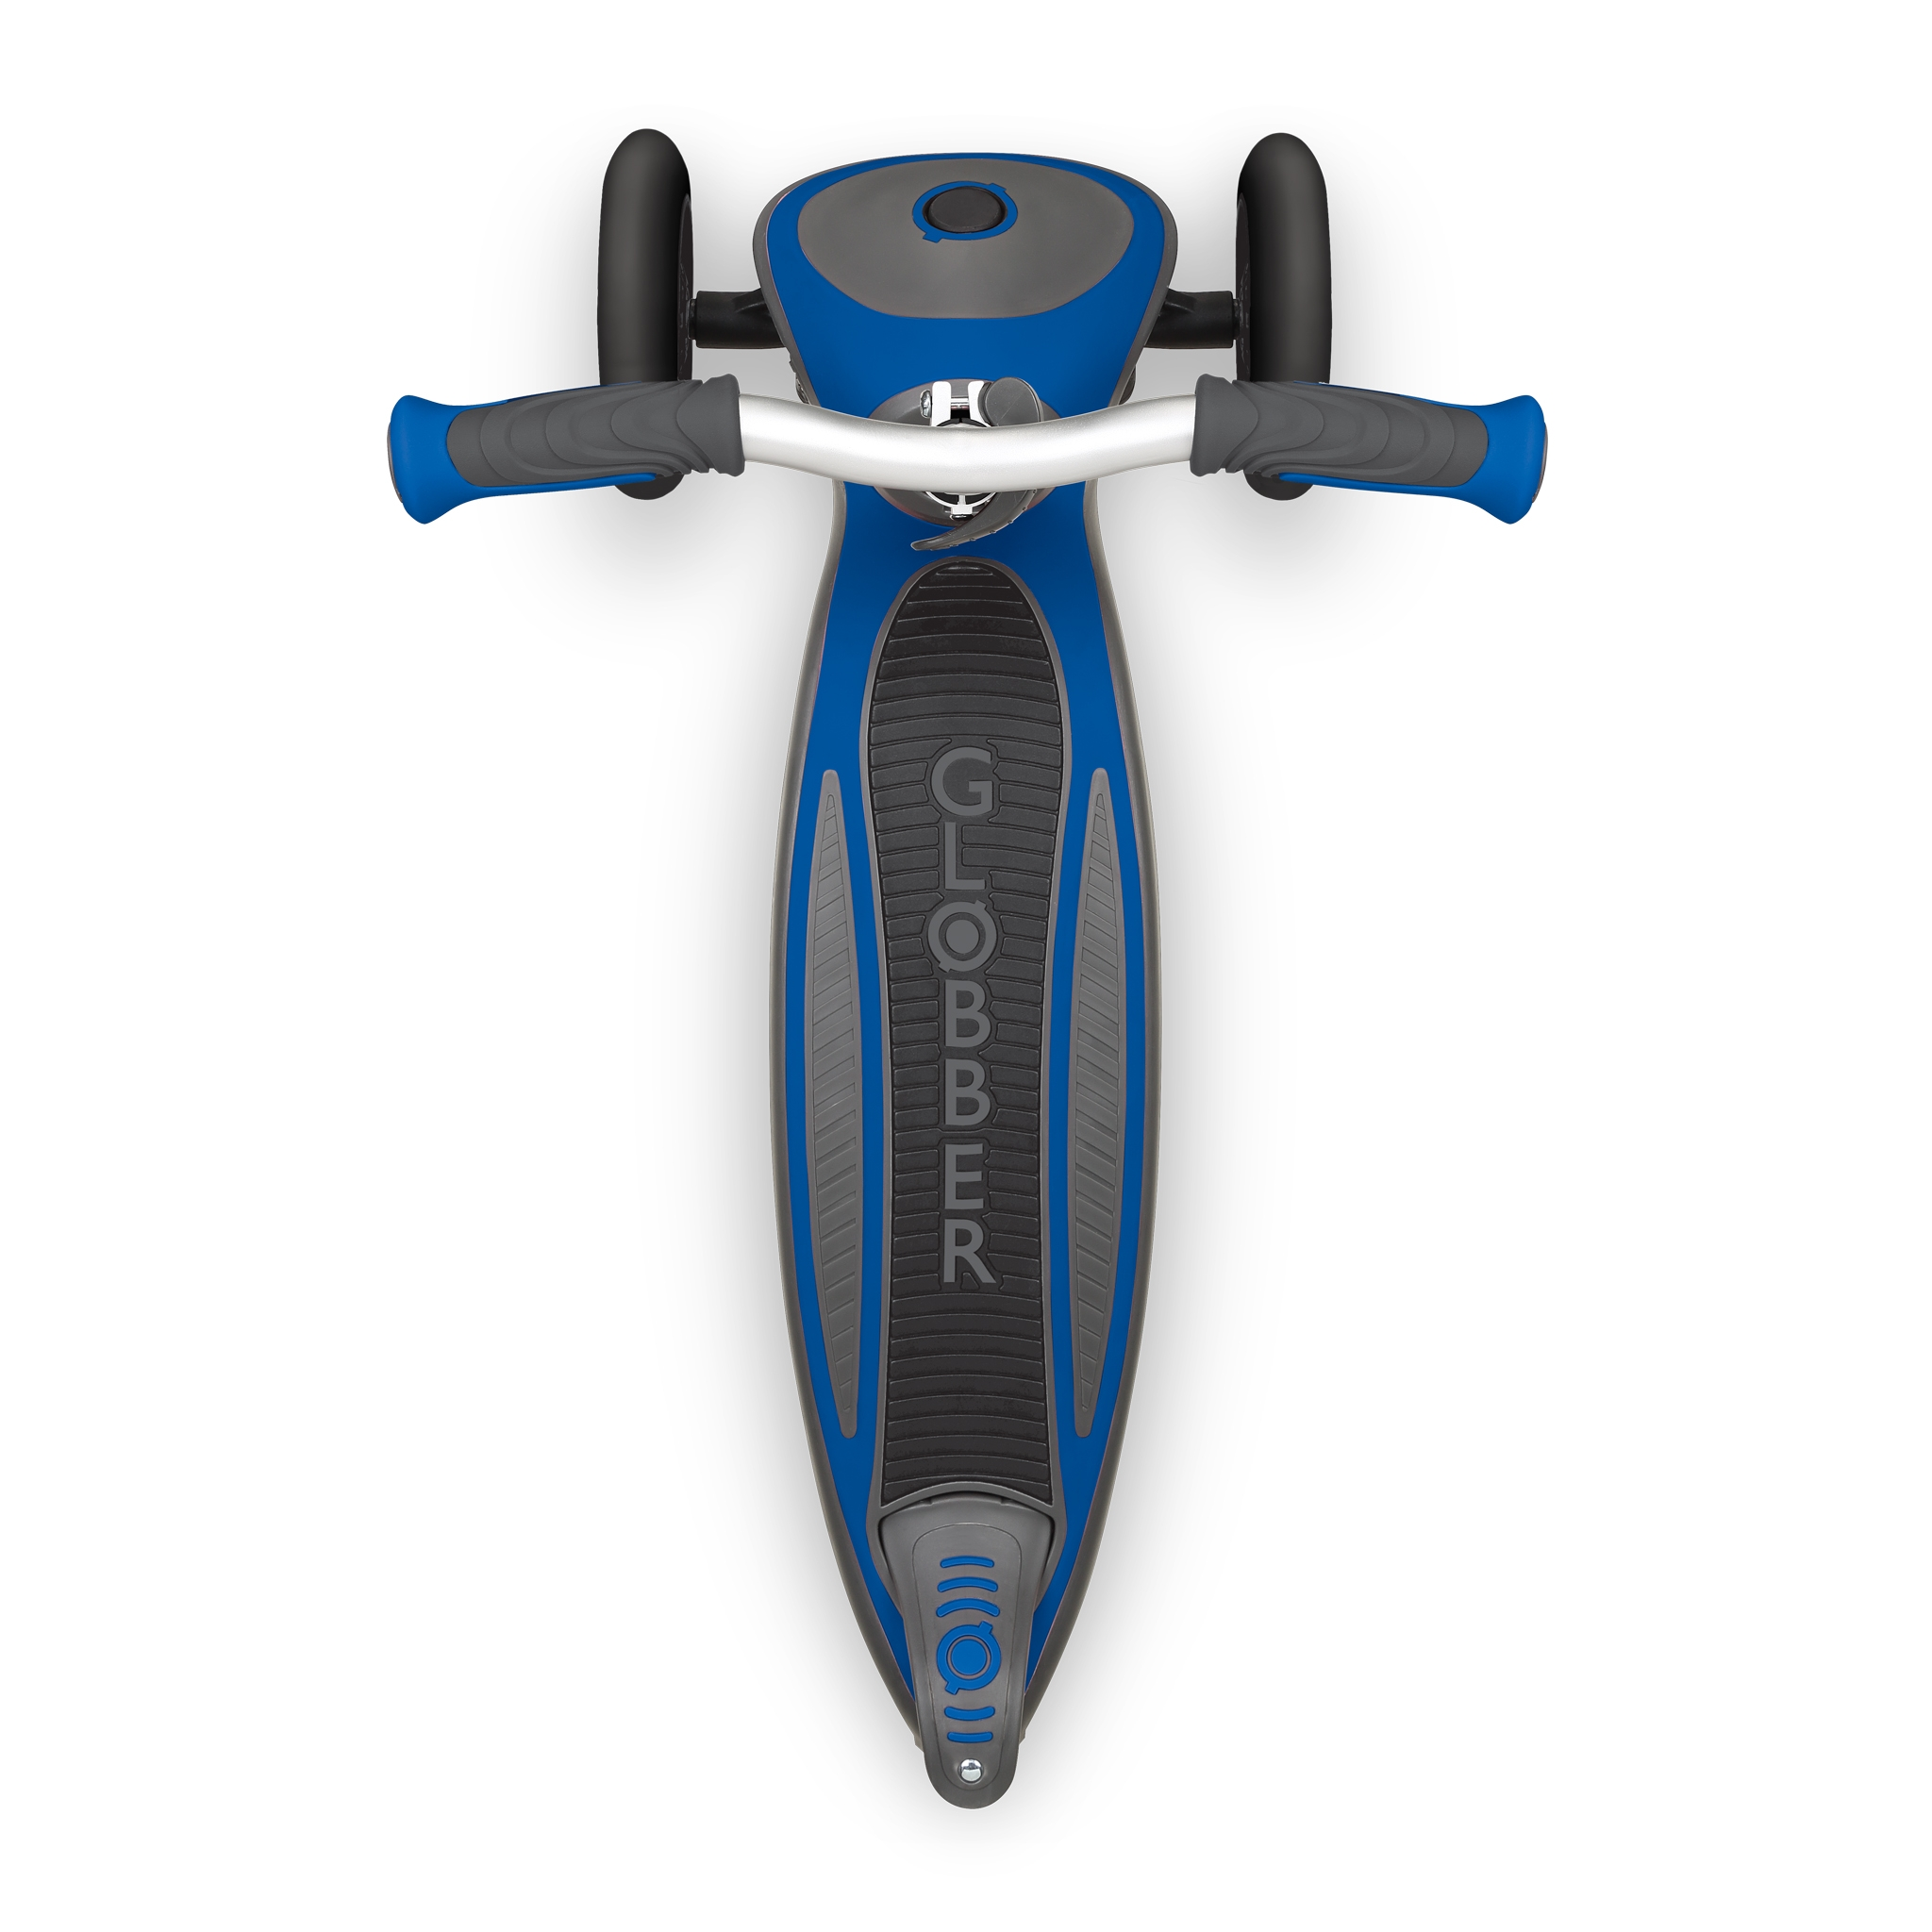 Globber-MASTER-3-wheel-foldable-scooter-for-kids-with-extra-wide-anti-slip-deck-for-comfortable-rides_dark-blue 0